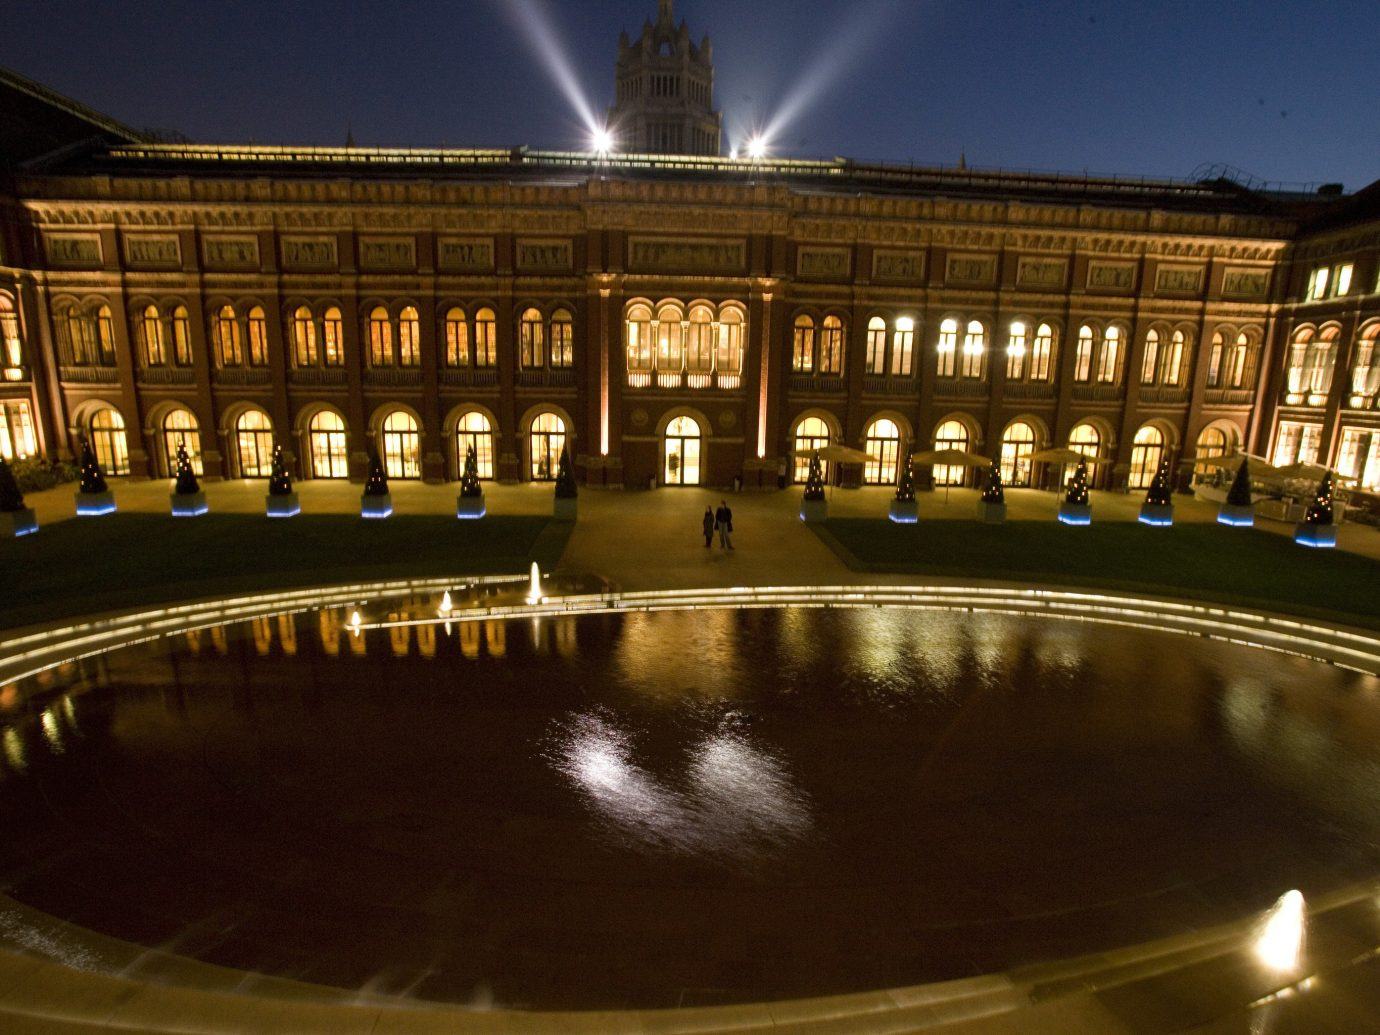 Arts + Culture Trip Ideas reflection water landmark night light tourist attraction City plaza town square metropolis building water feature fountain evening reflecting pool symmetry estate